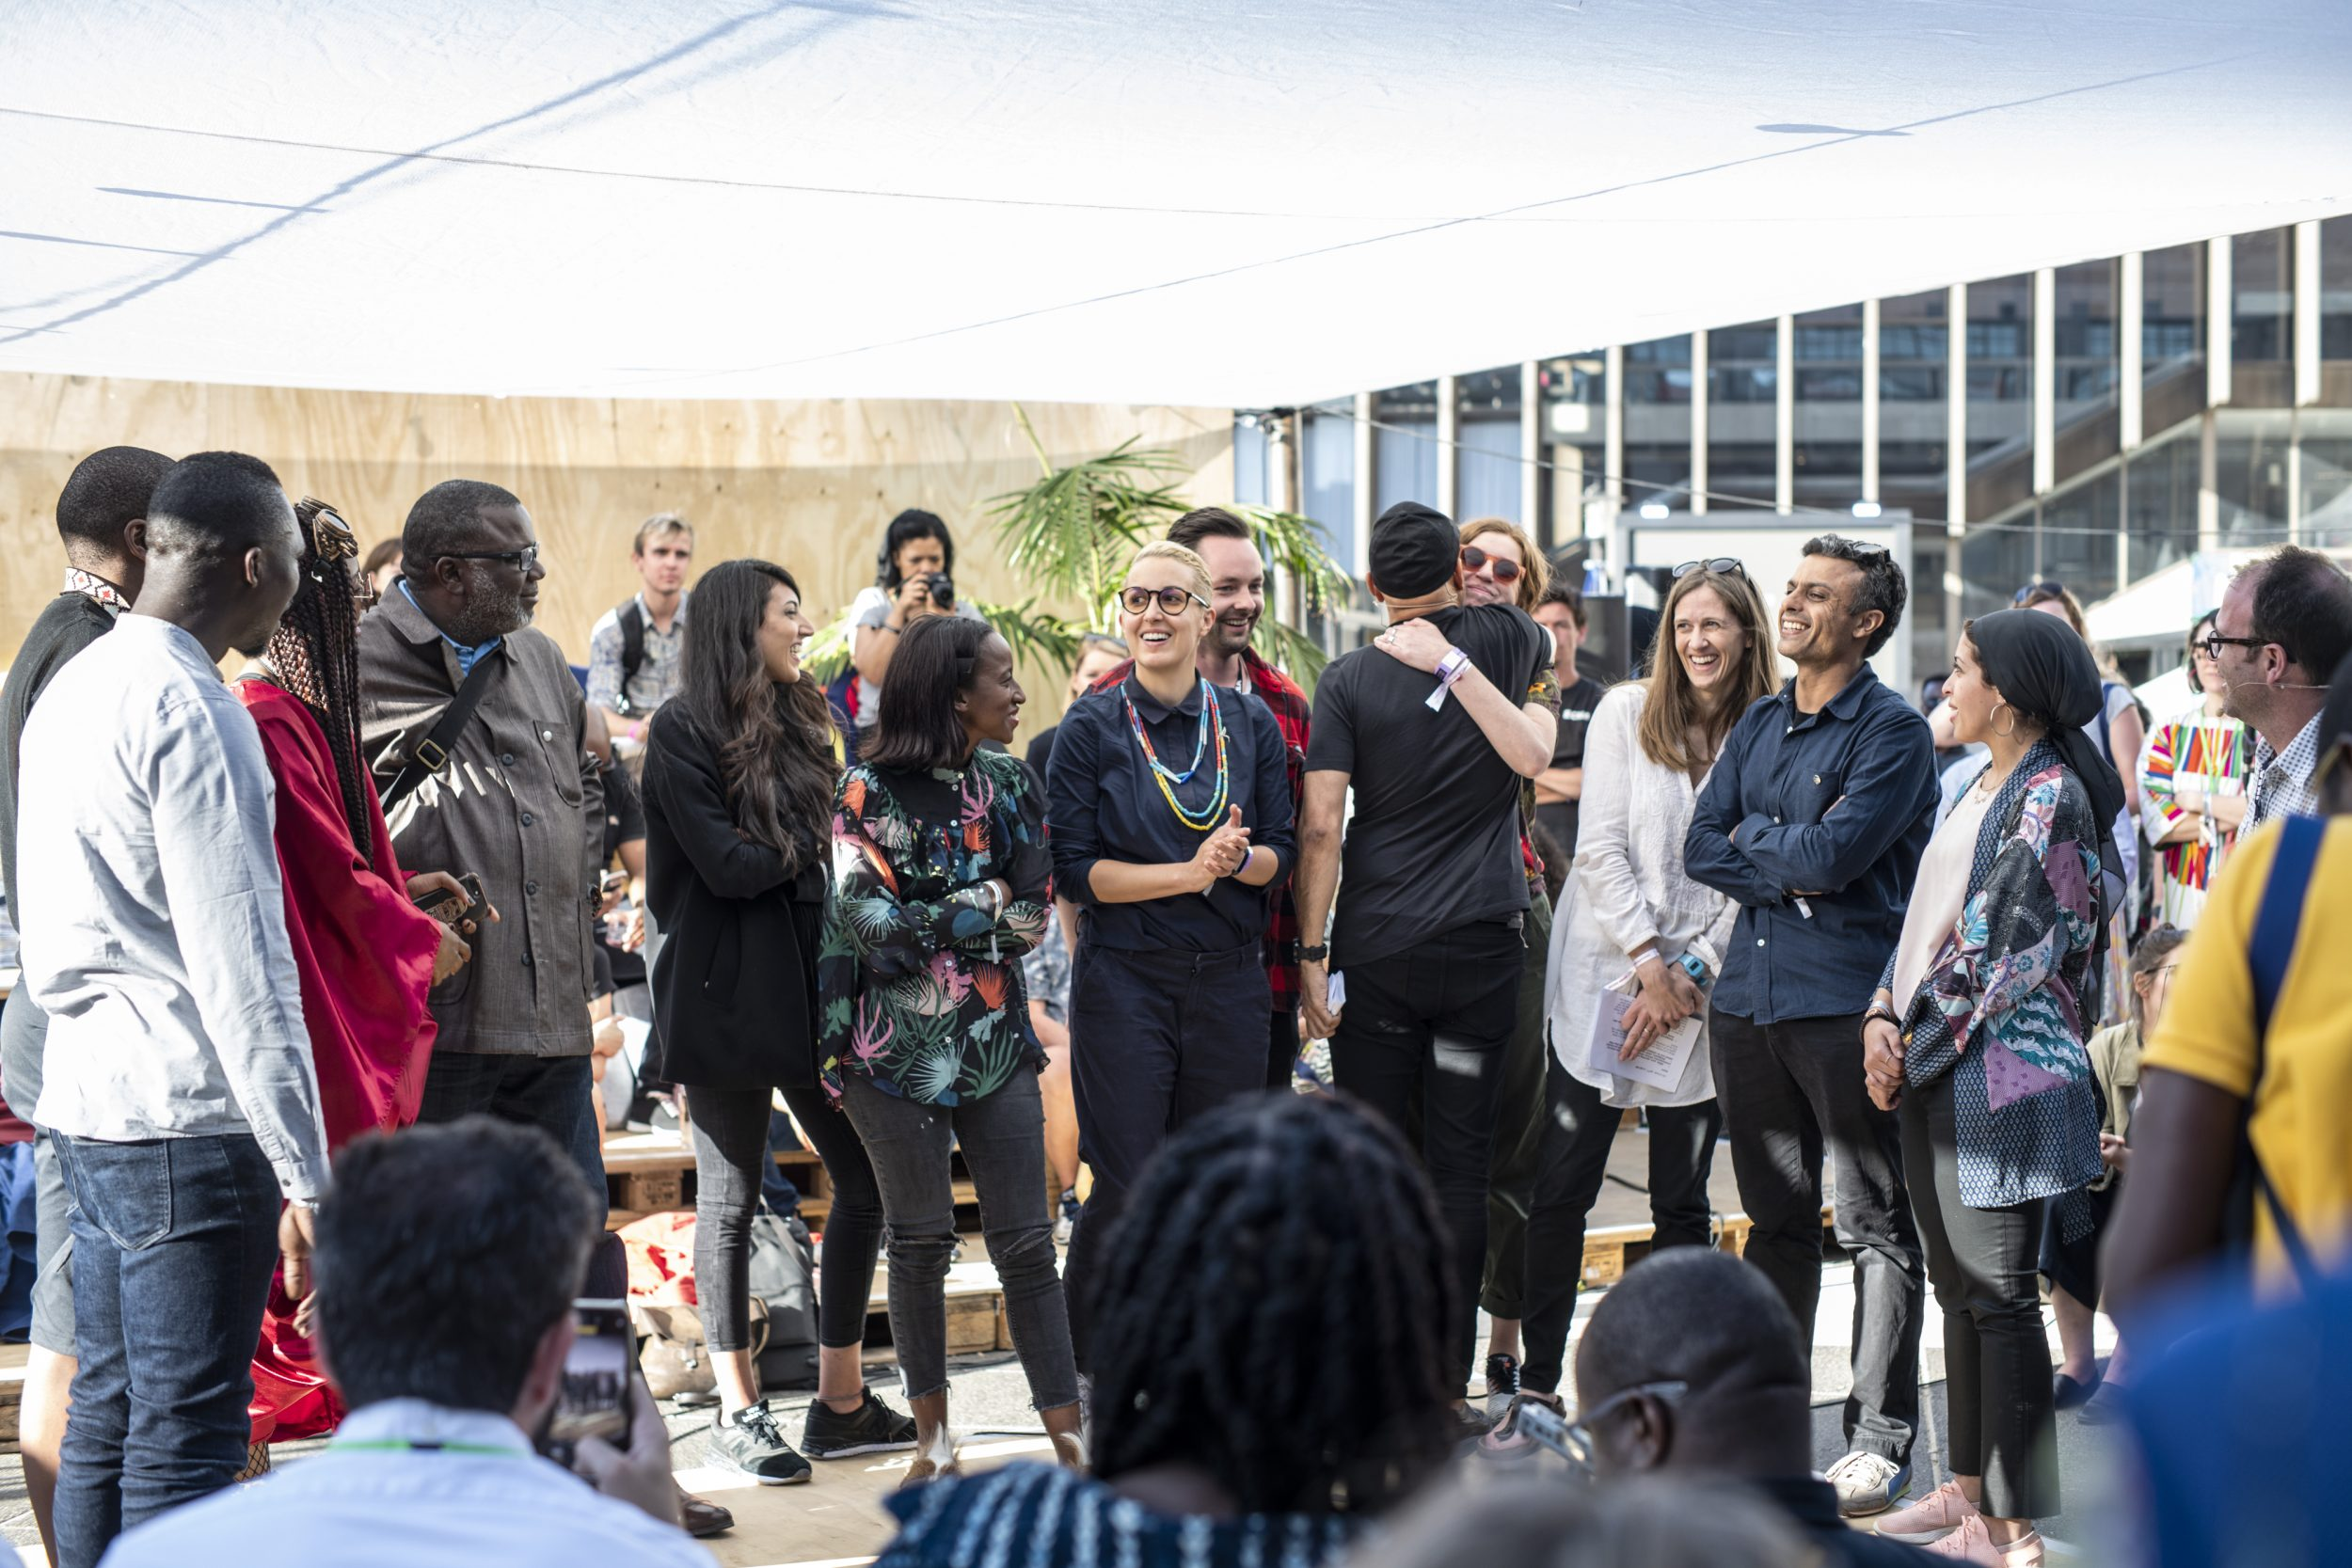 The tastemakers presented their designs at 2019 Design Indaba